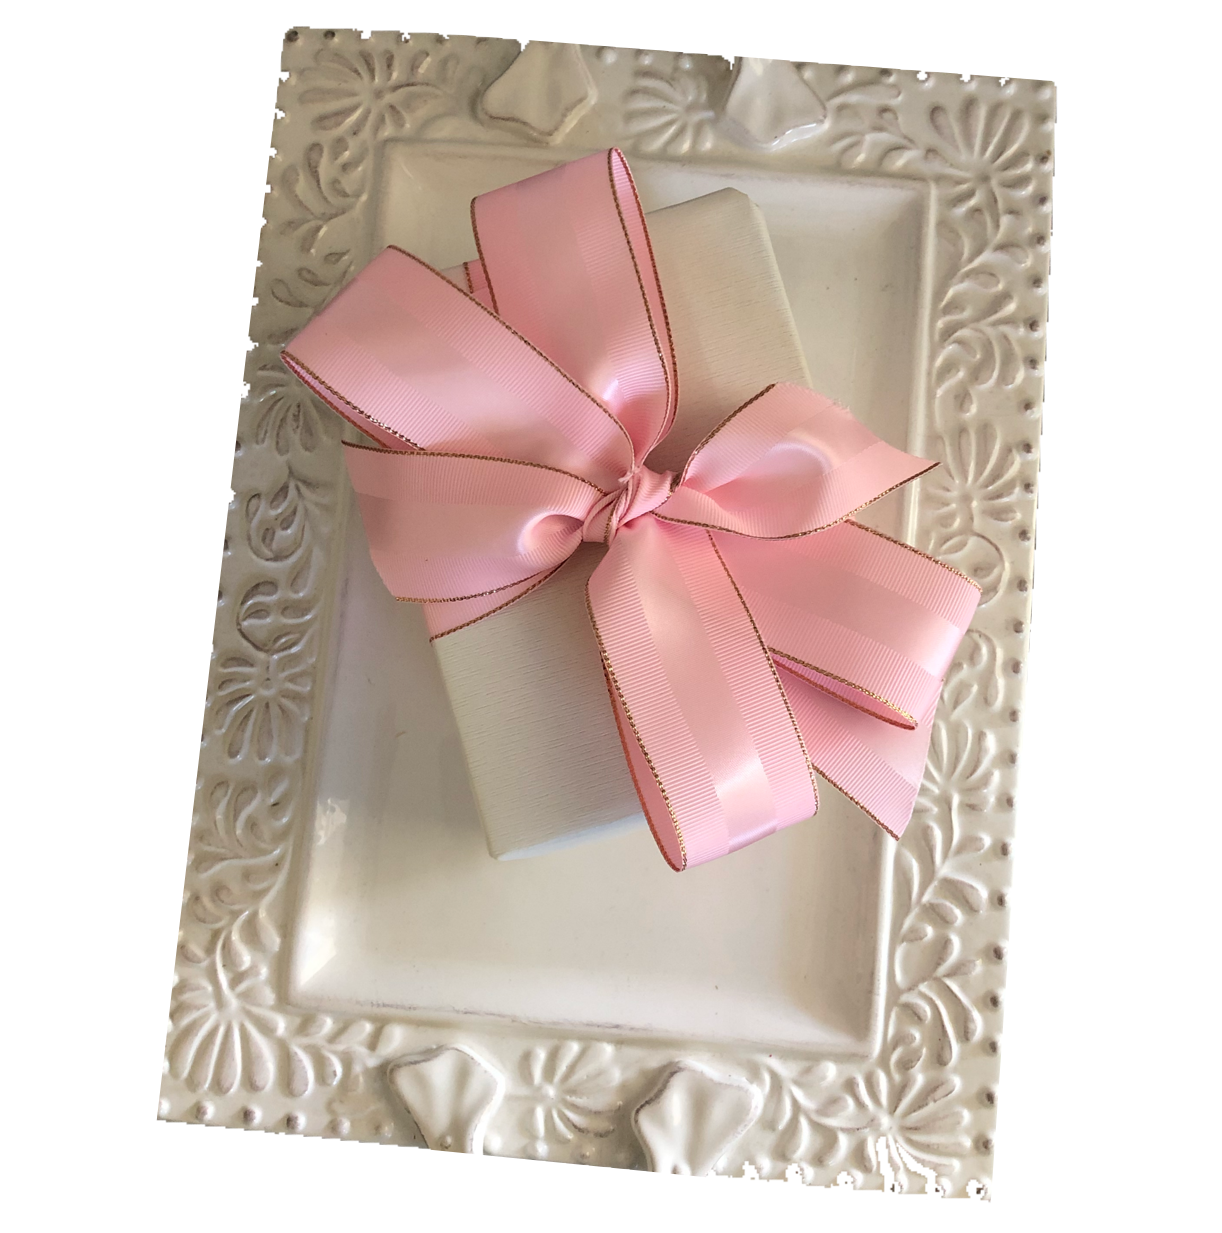 Pink Grosgrain Ribbon with Rose Gold Border | Metallic Ribbon for Holiday Gifts